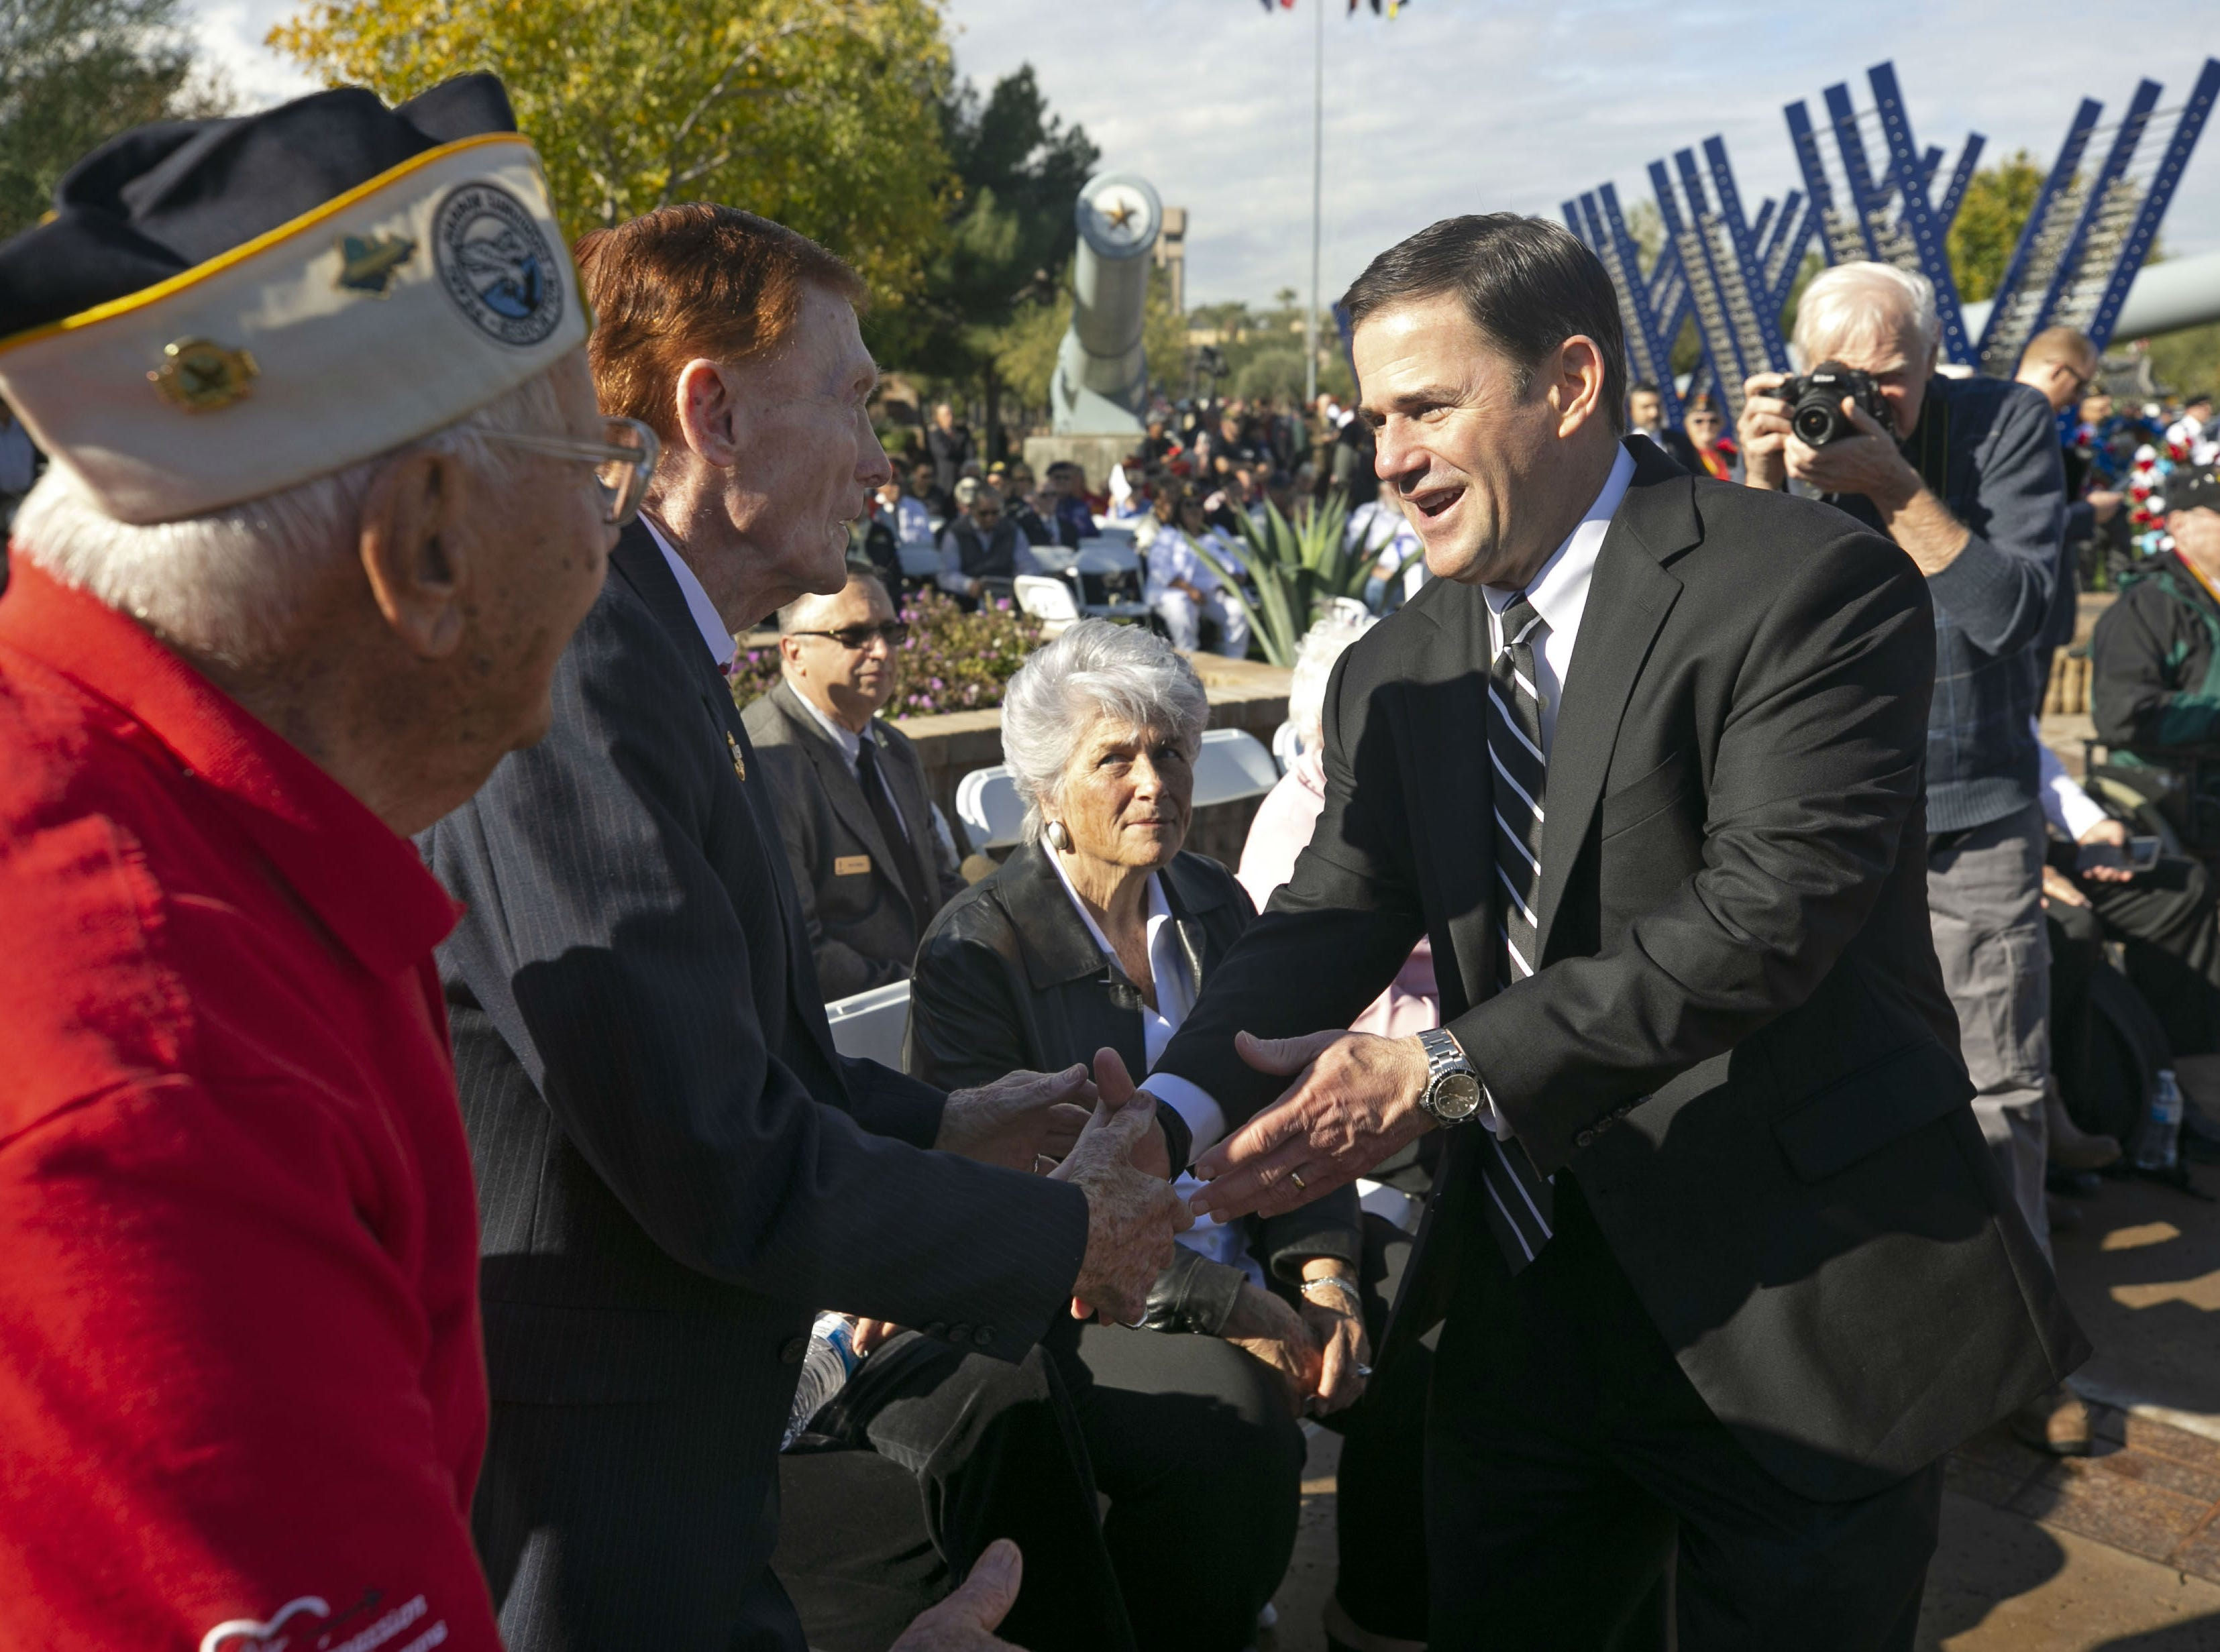 Gov. Doug Ducey shakes hands with Pearl Harbor survivors during a Pearl Harbor Remembrance Day event at Wesley Bolin Plaza in Phoenix on Dec. 7, 2018, the 77th anniversary of the attack on Pearl Harbor.